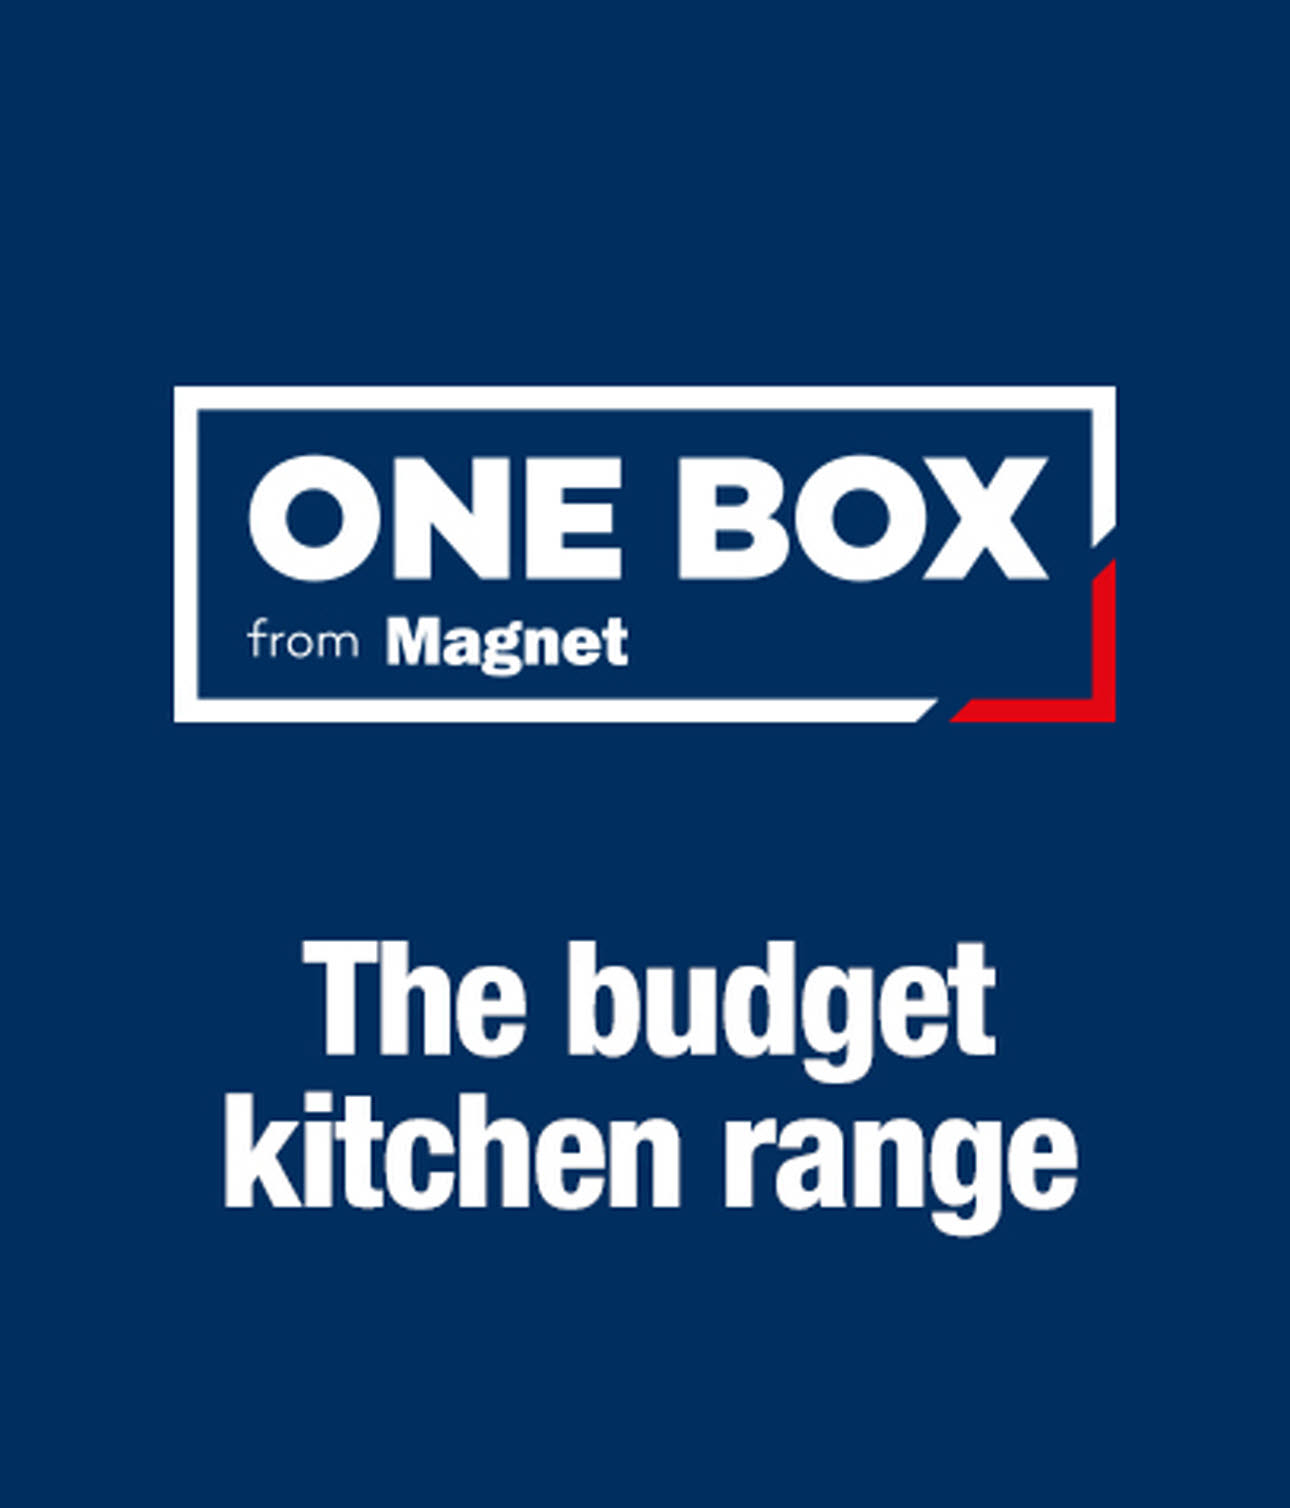 One Box Budget range